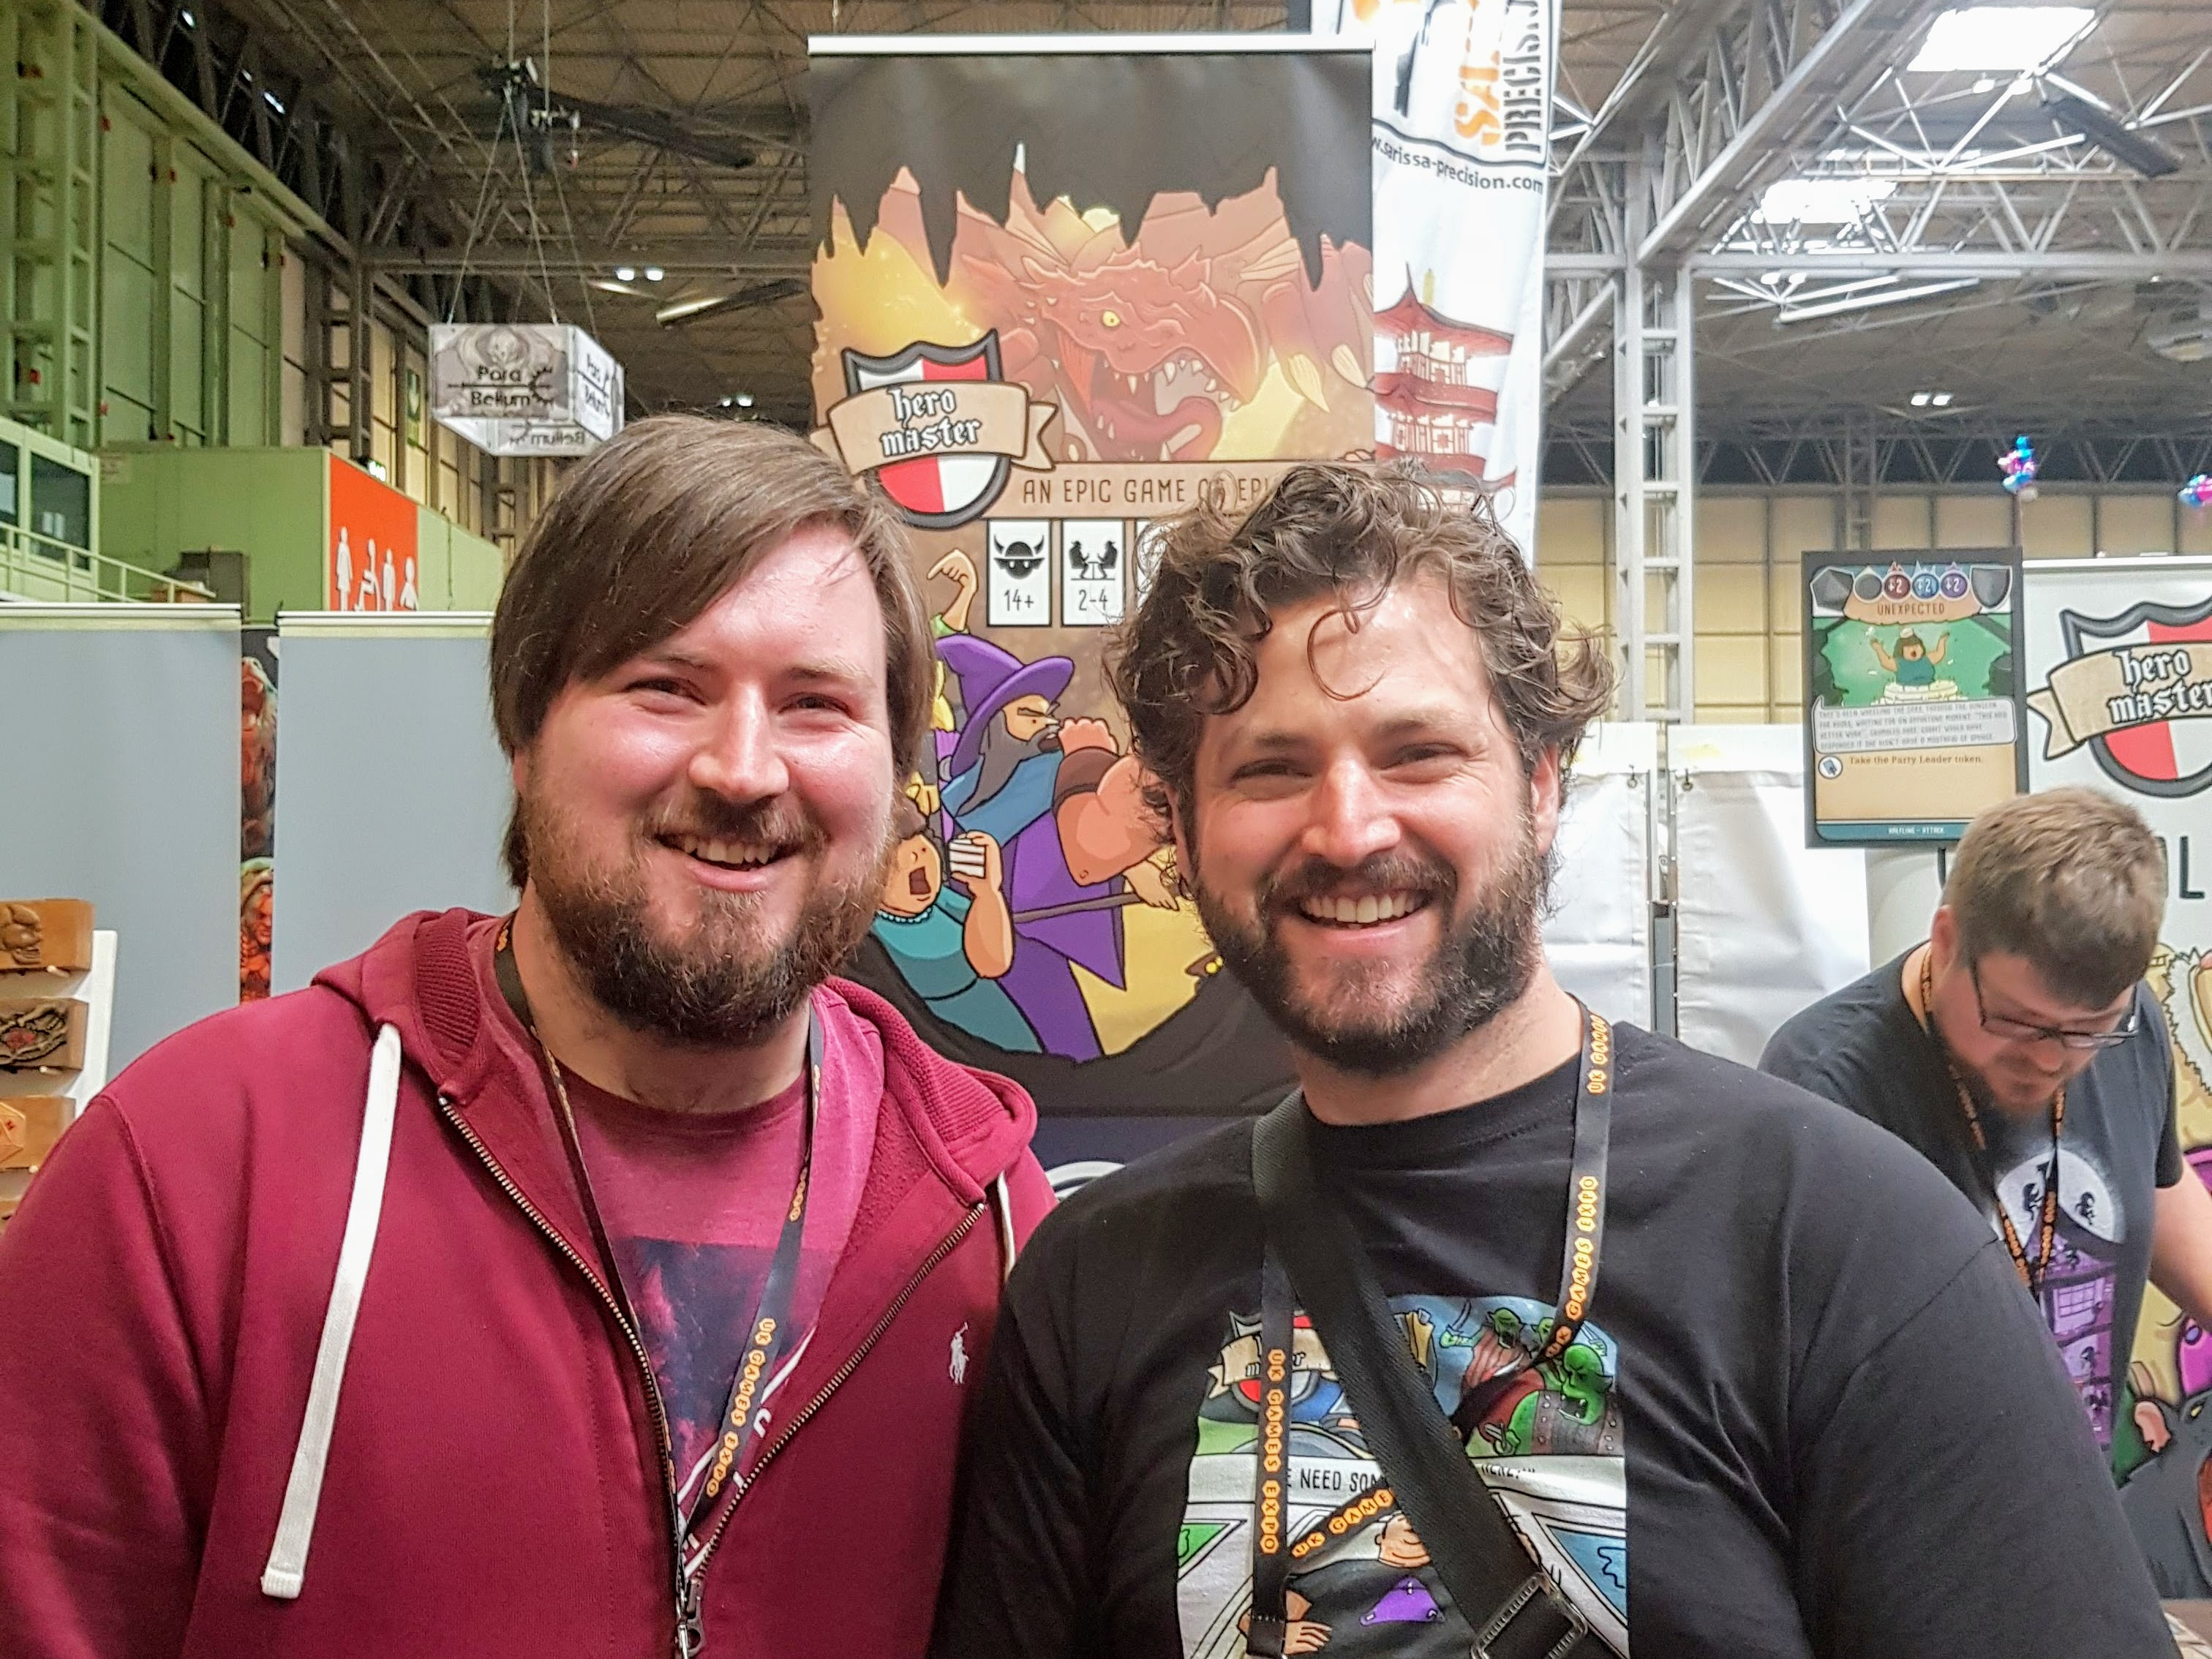 A photo of of me and Jamie 'The Noble Artist' when we met at the UK Games Expo 2018. We are both stood smiling in front of the Hero Master stand at the Expo following our demo session.